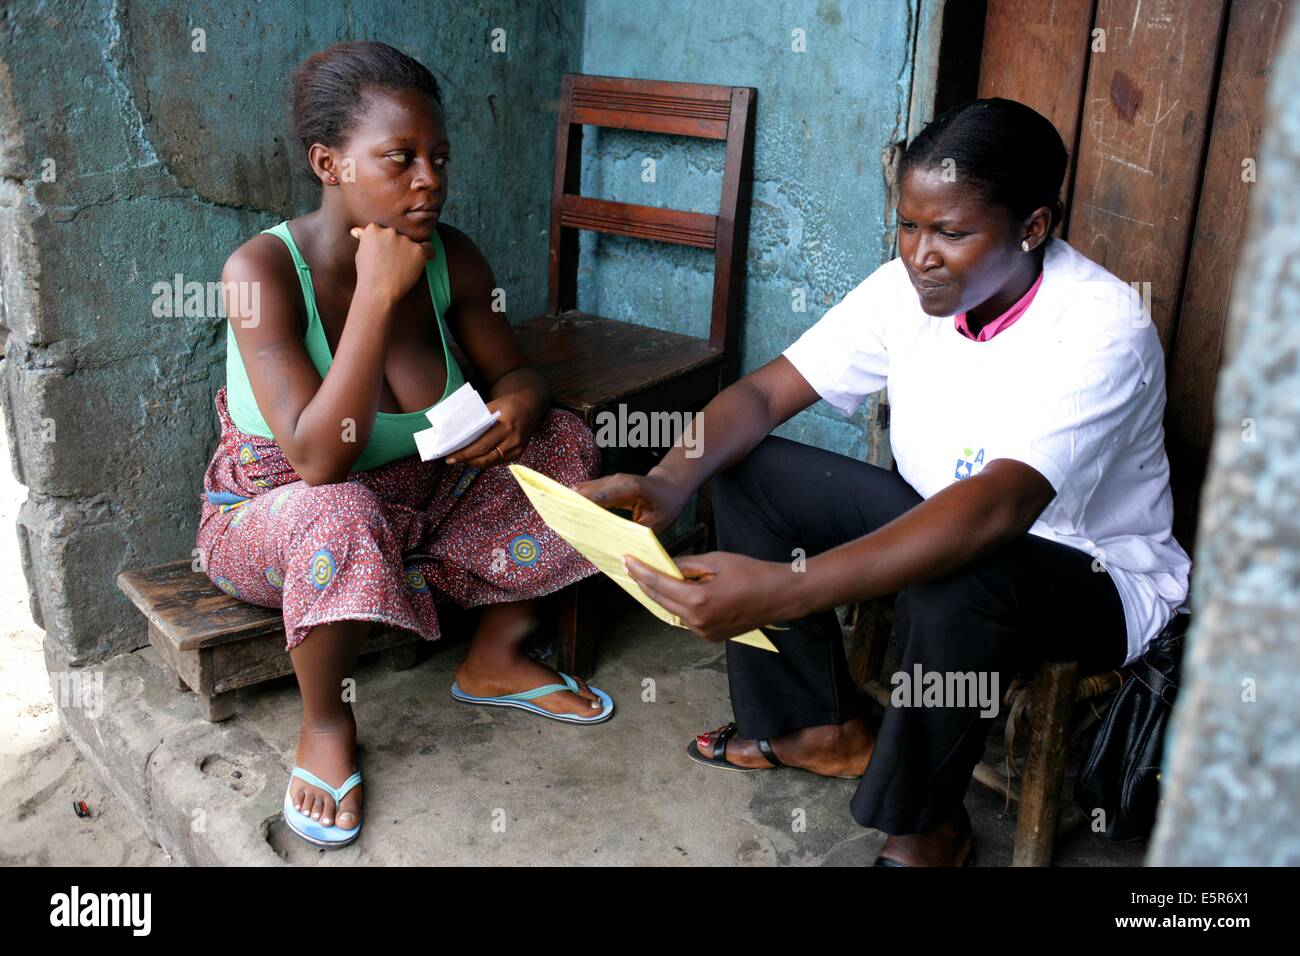 A social worker visits a young pregnant woman, Program for prevention of malnutrition implemented by Action Contre - Stock Image